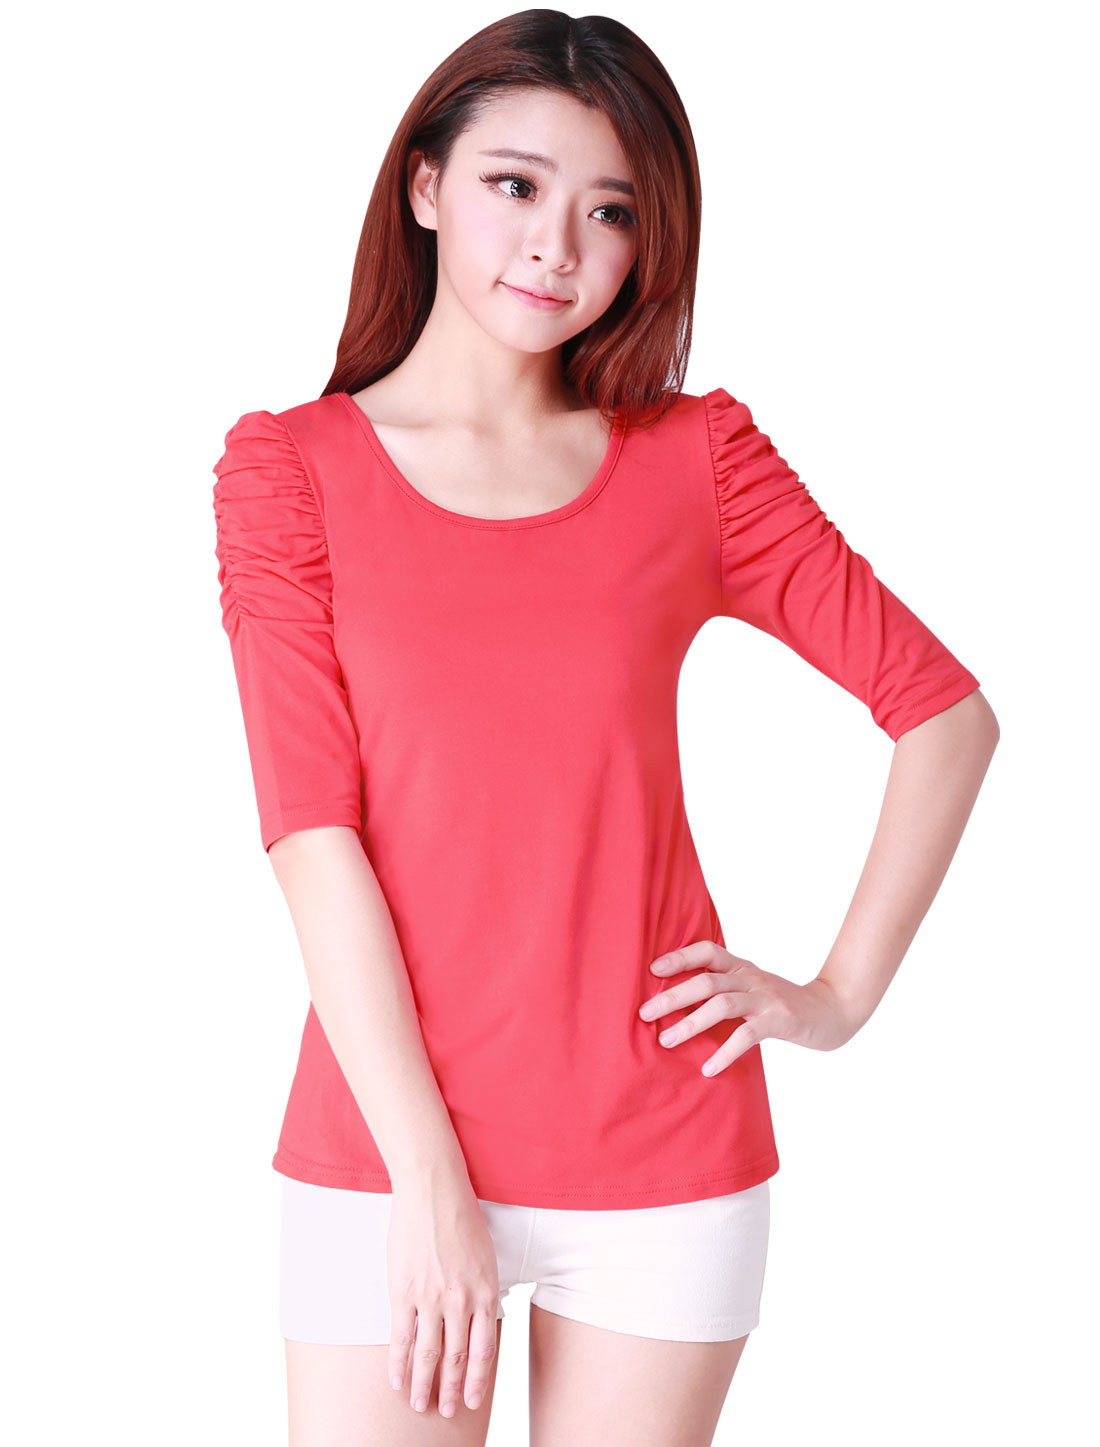 Slipover Slim Fit Watermelon Red Casual Tee Shirt XL for Lady